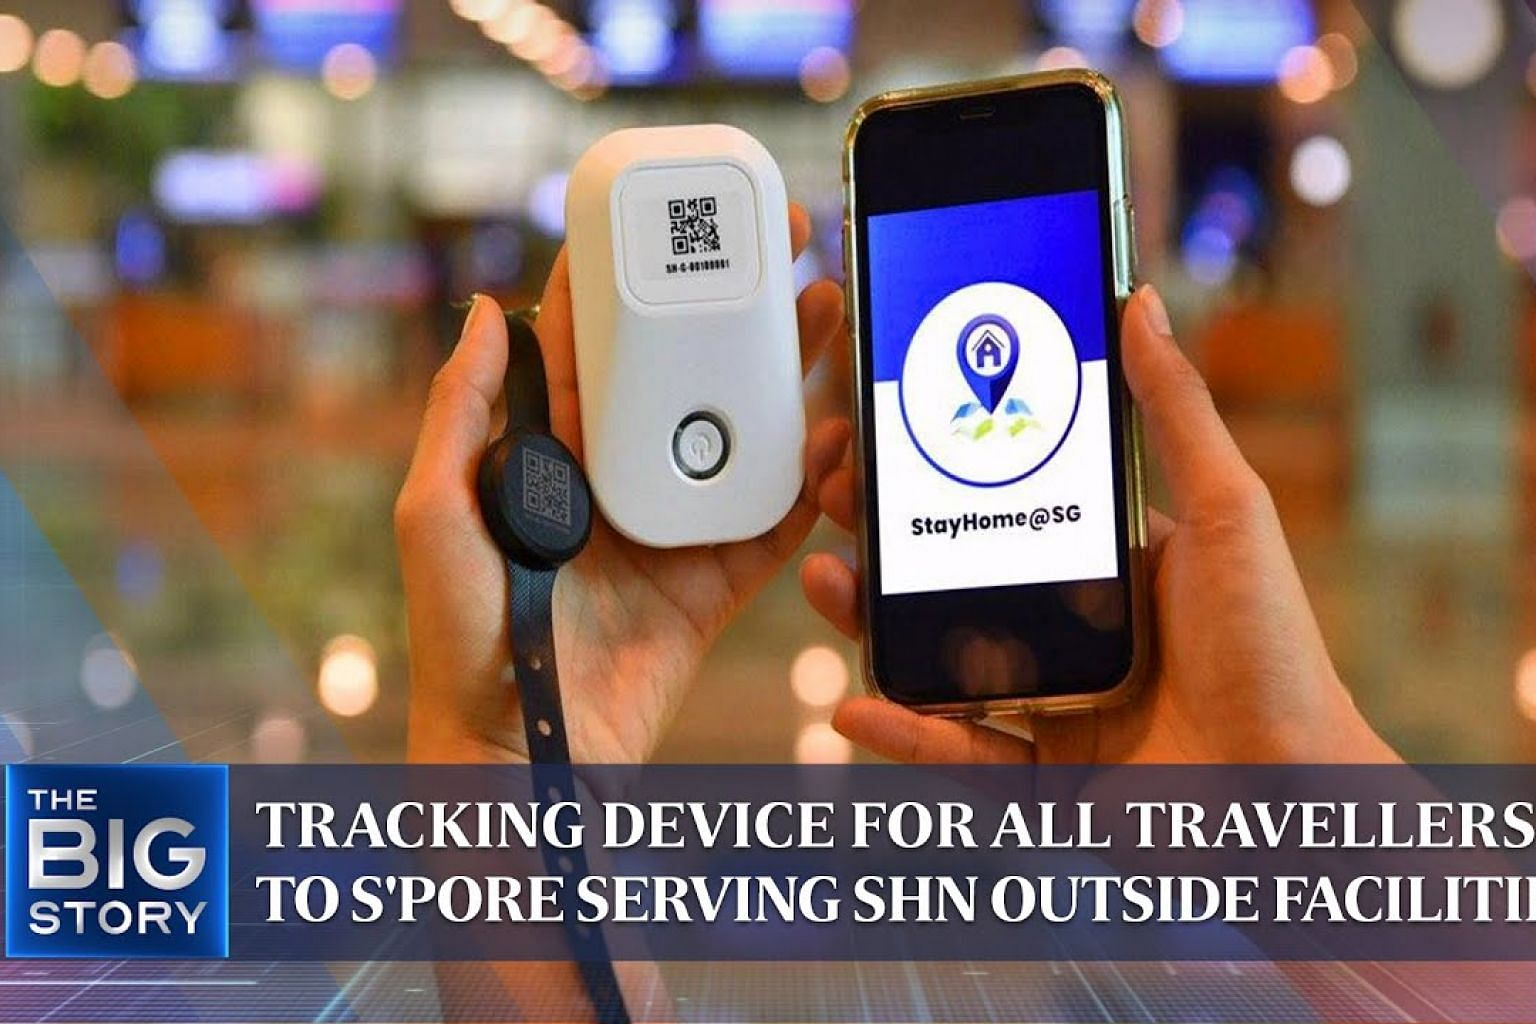 Tracking device for all travellers to S'pore serving SHN outside facilities | THE BIG STORY